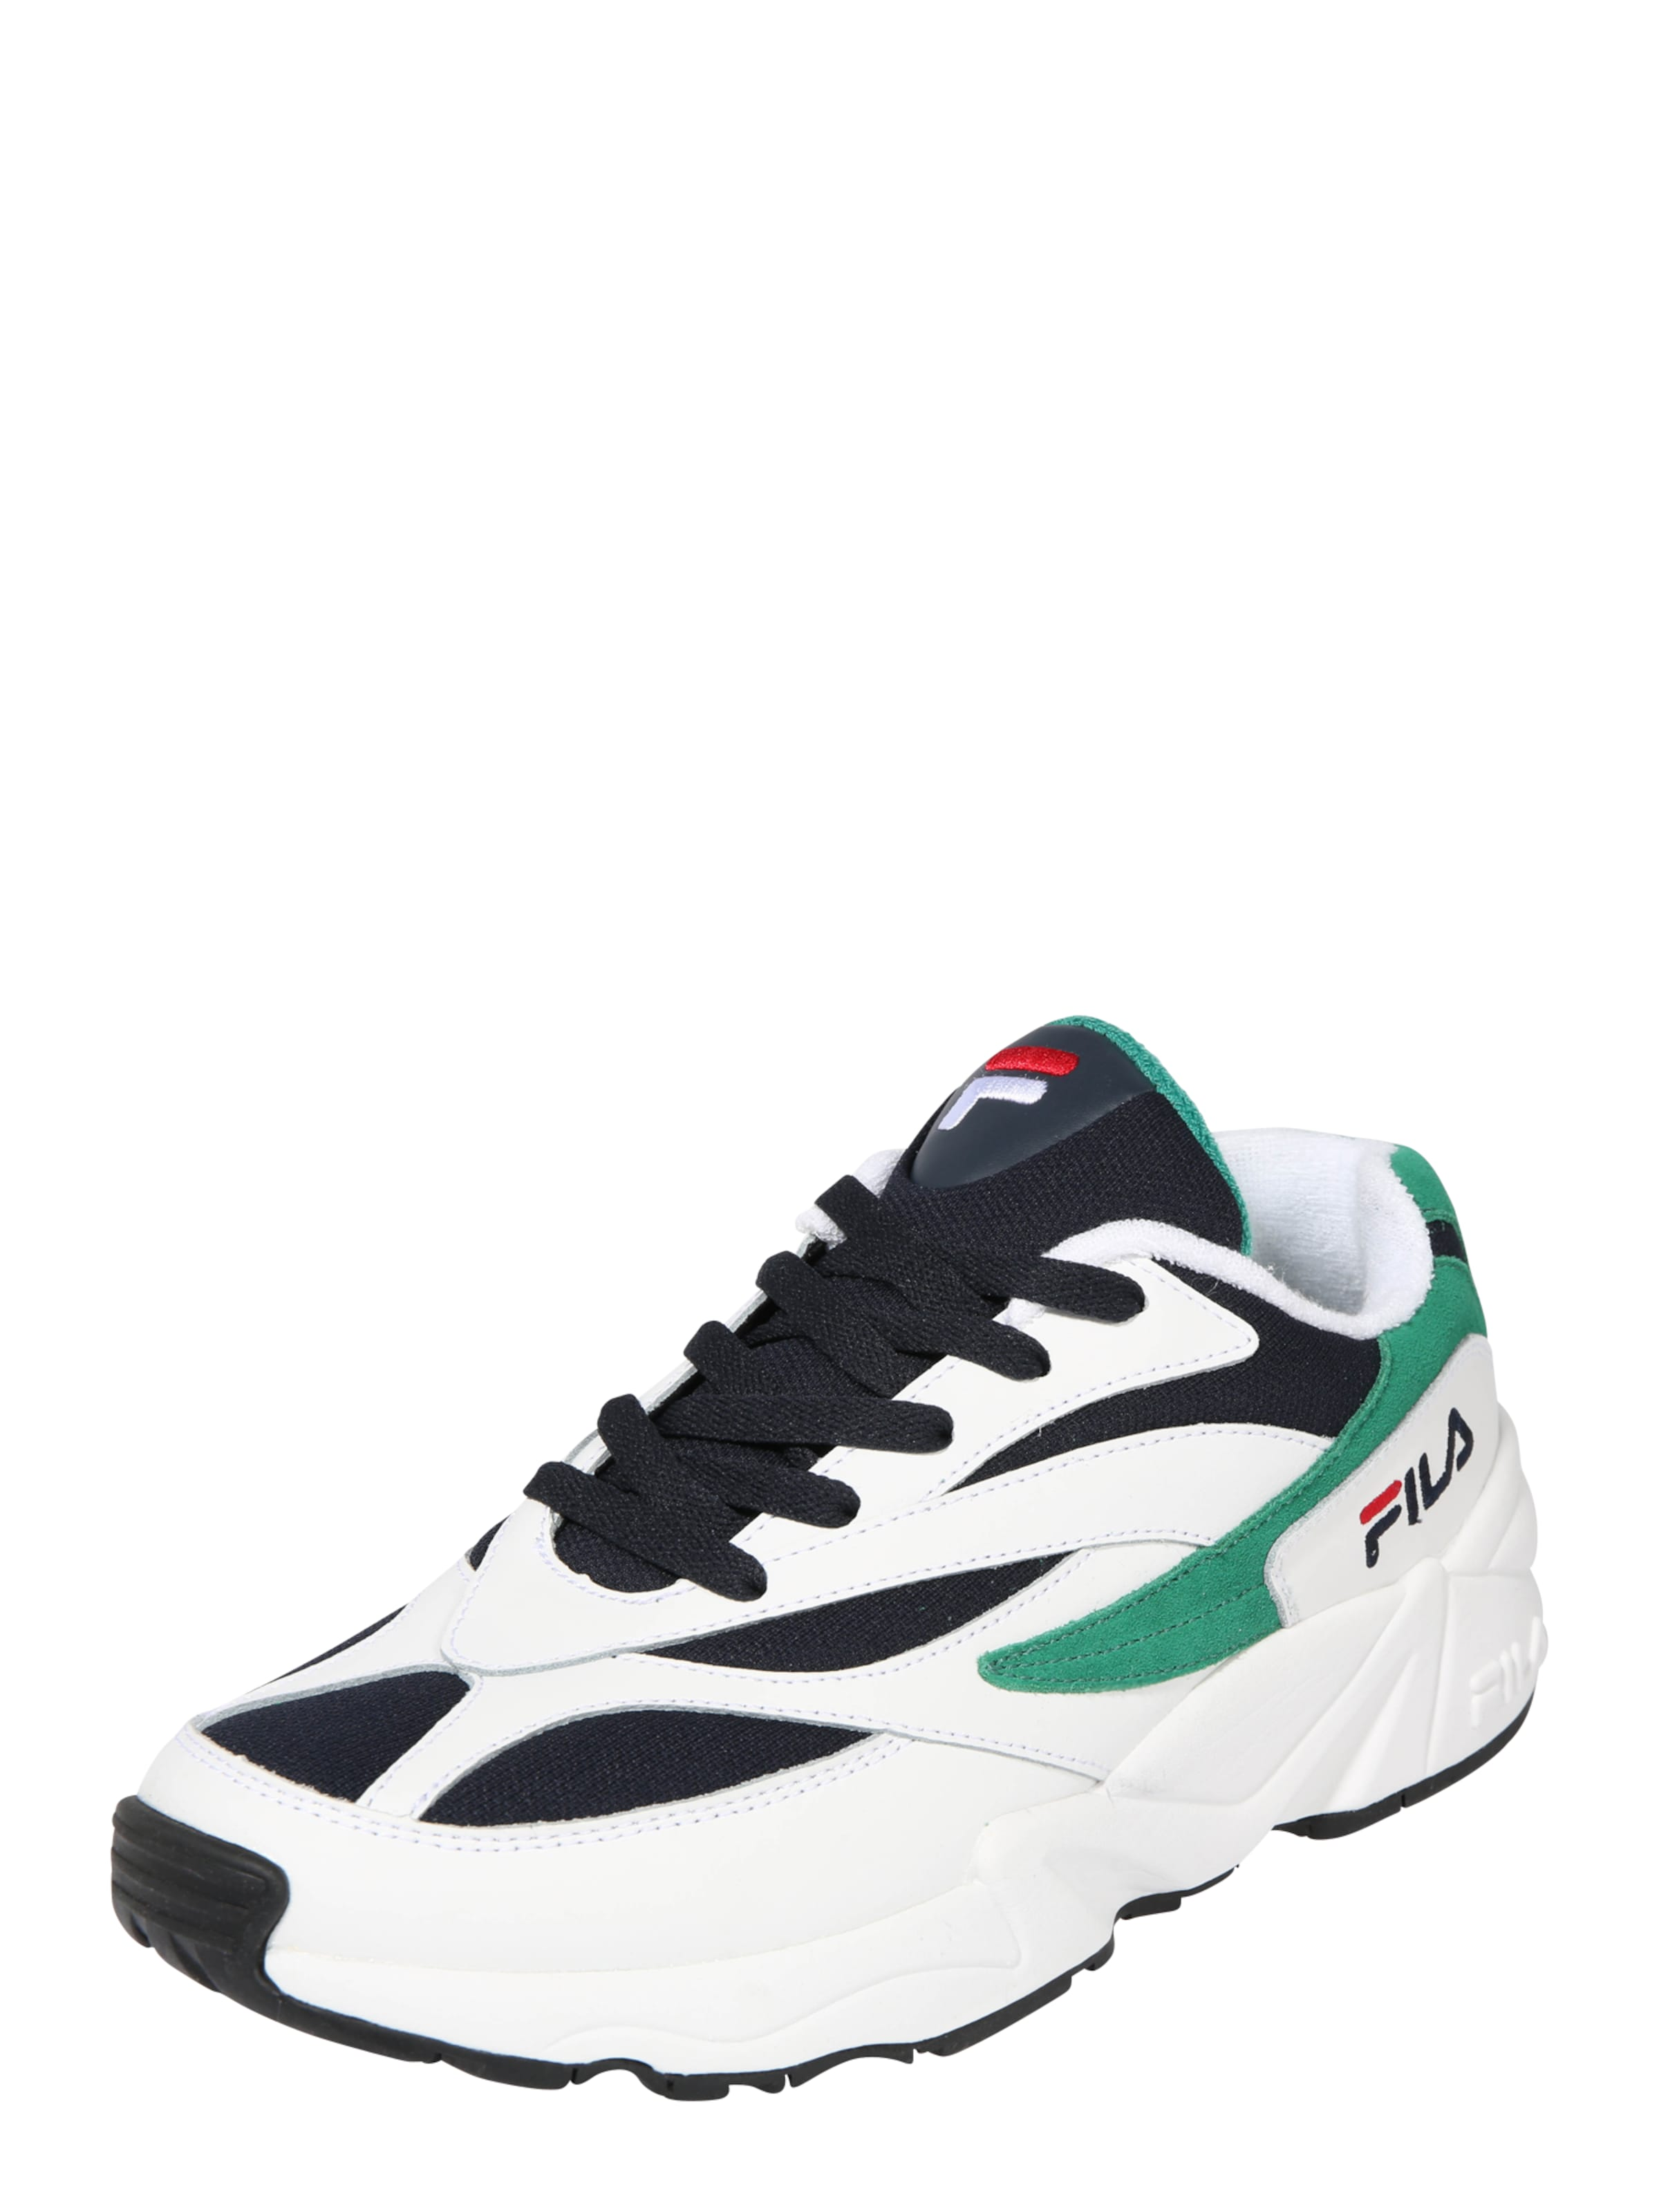 En 'venom Bleu Basses Fila Low' MarineVert Blanc Baskets Fu3lJT15Kc